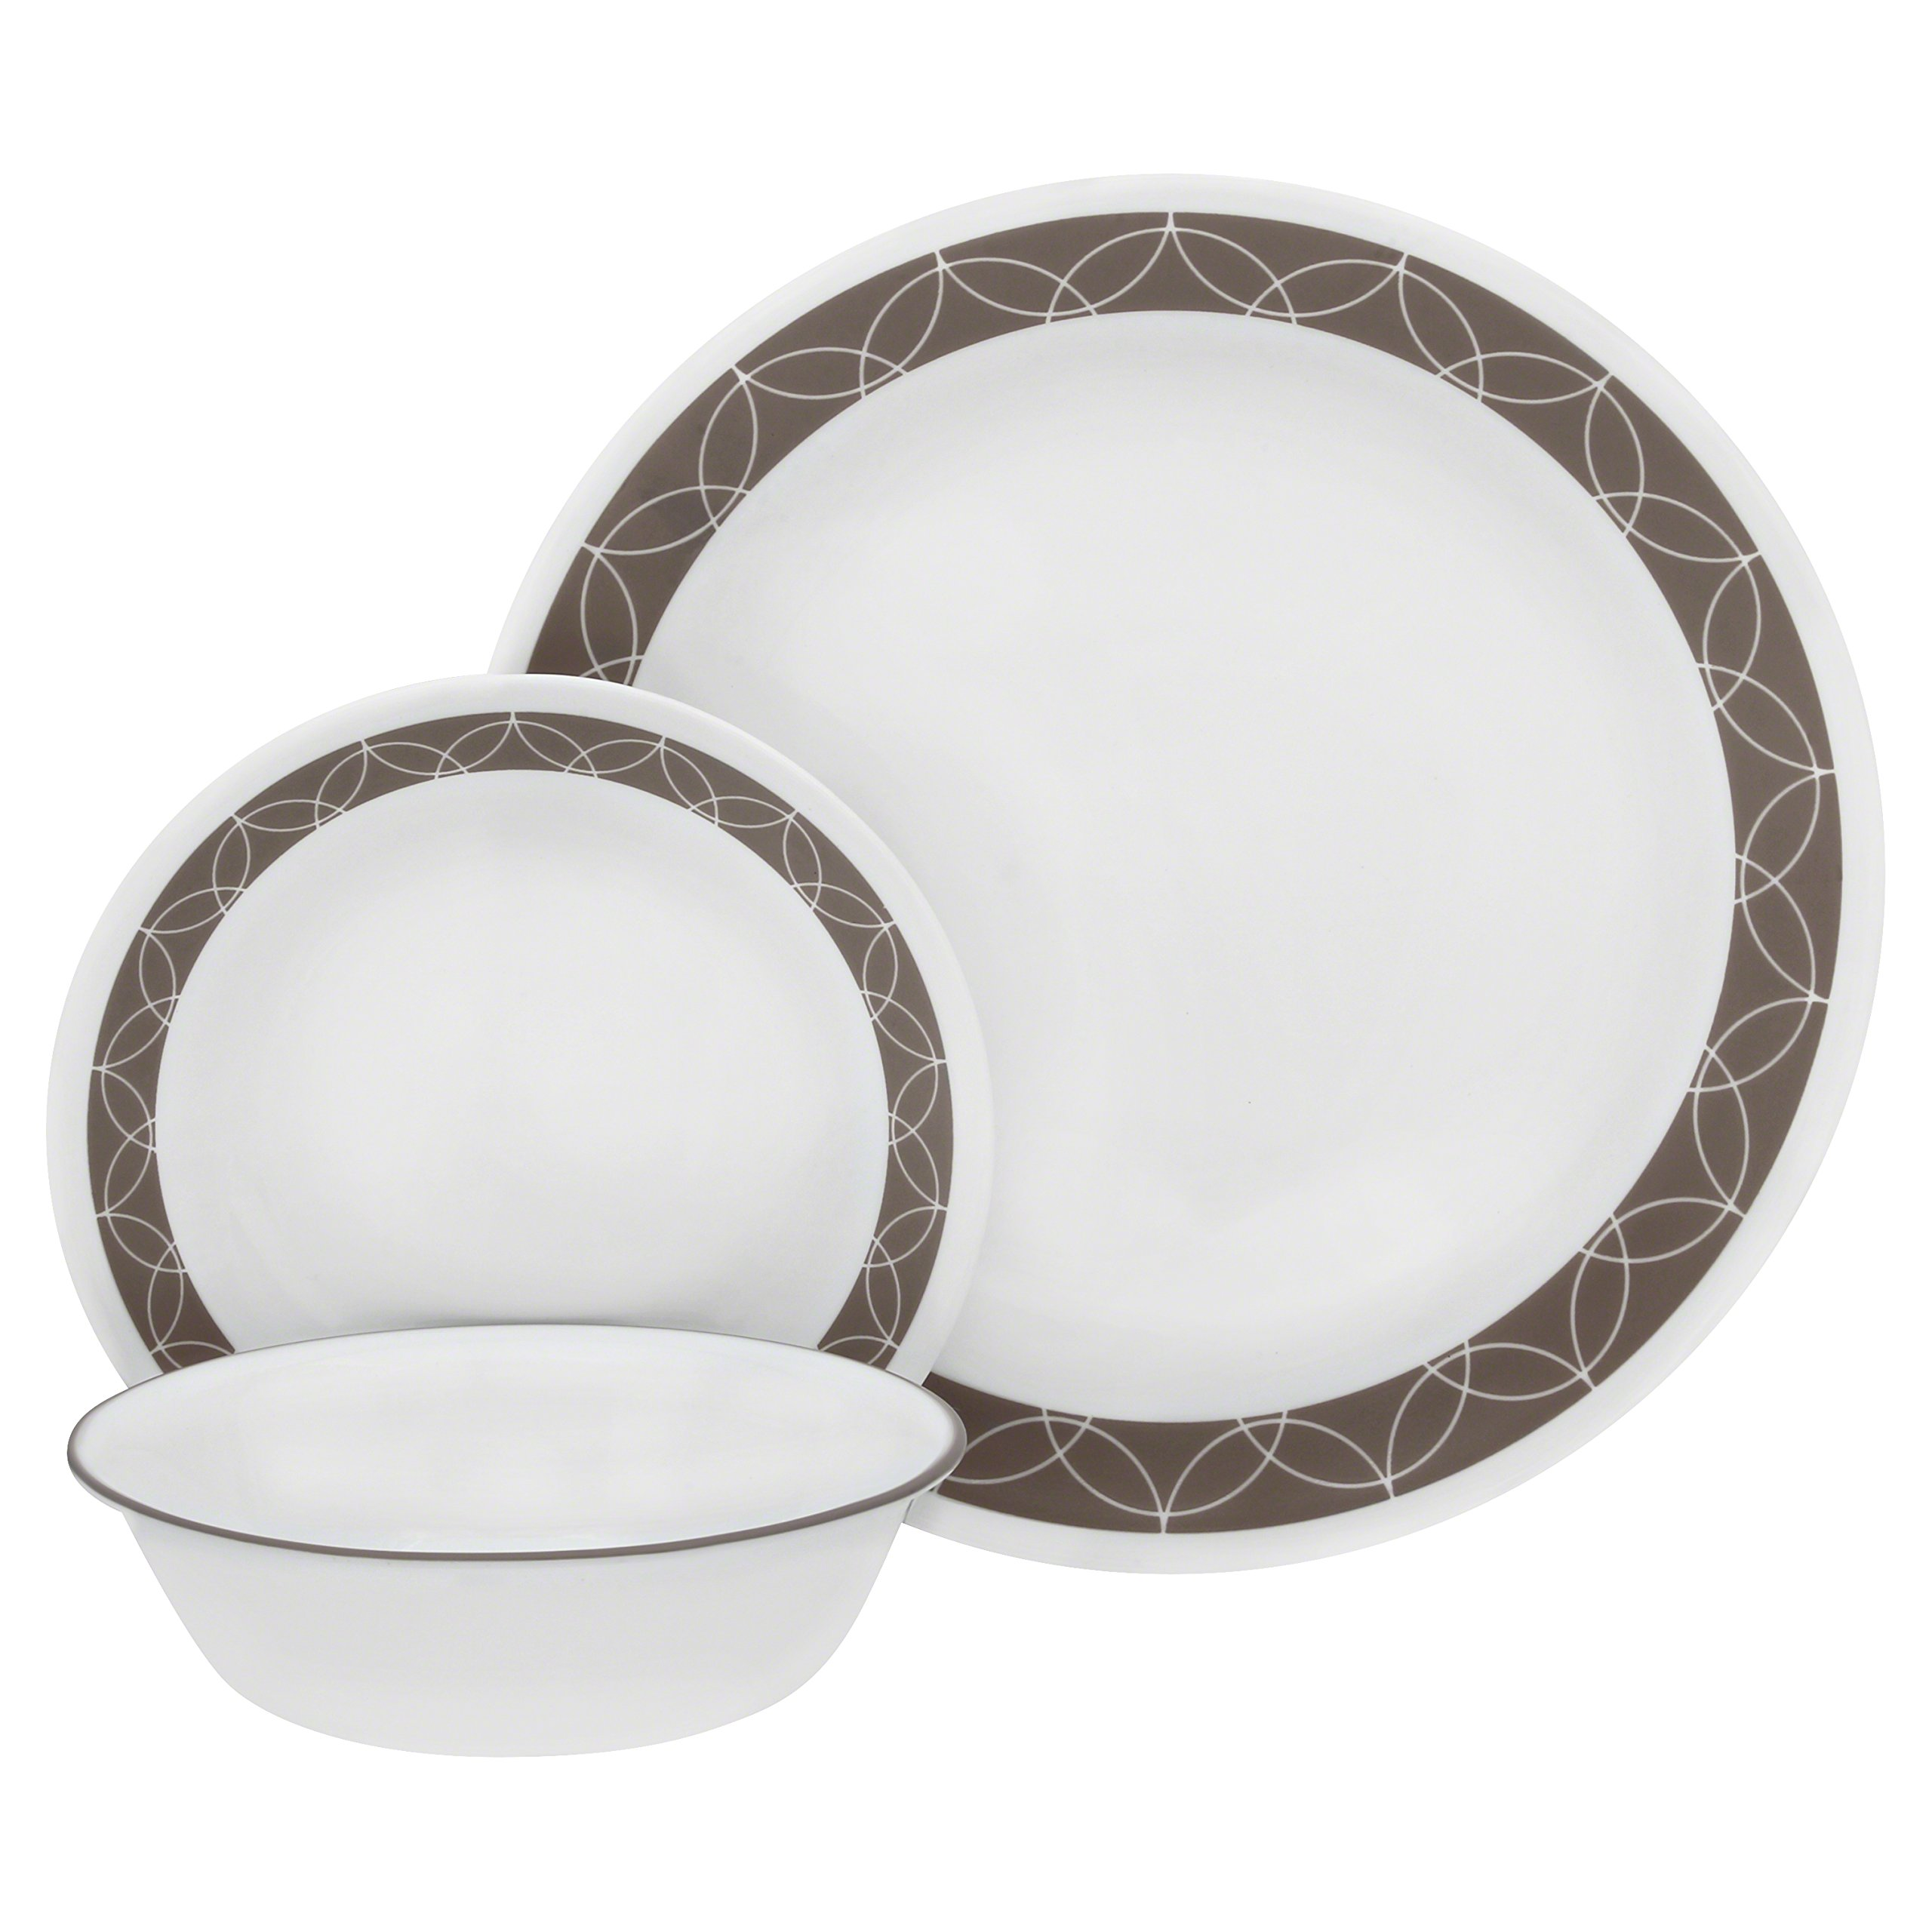 Corelle Service for 6, Chip Resistant, Sand Sketch dinner plates, 18-piece